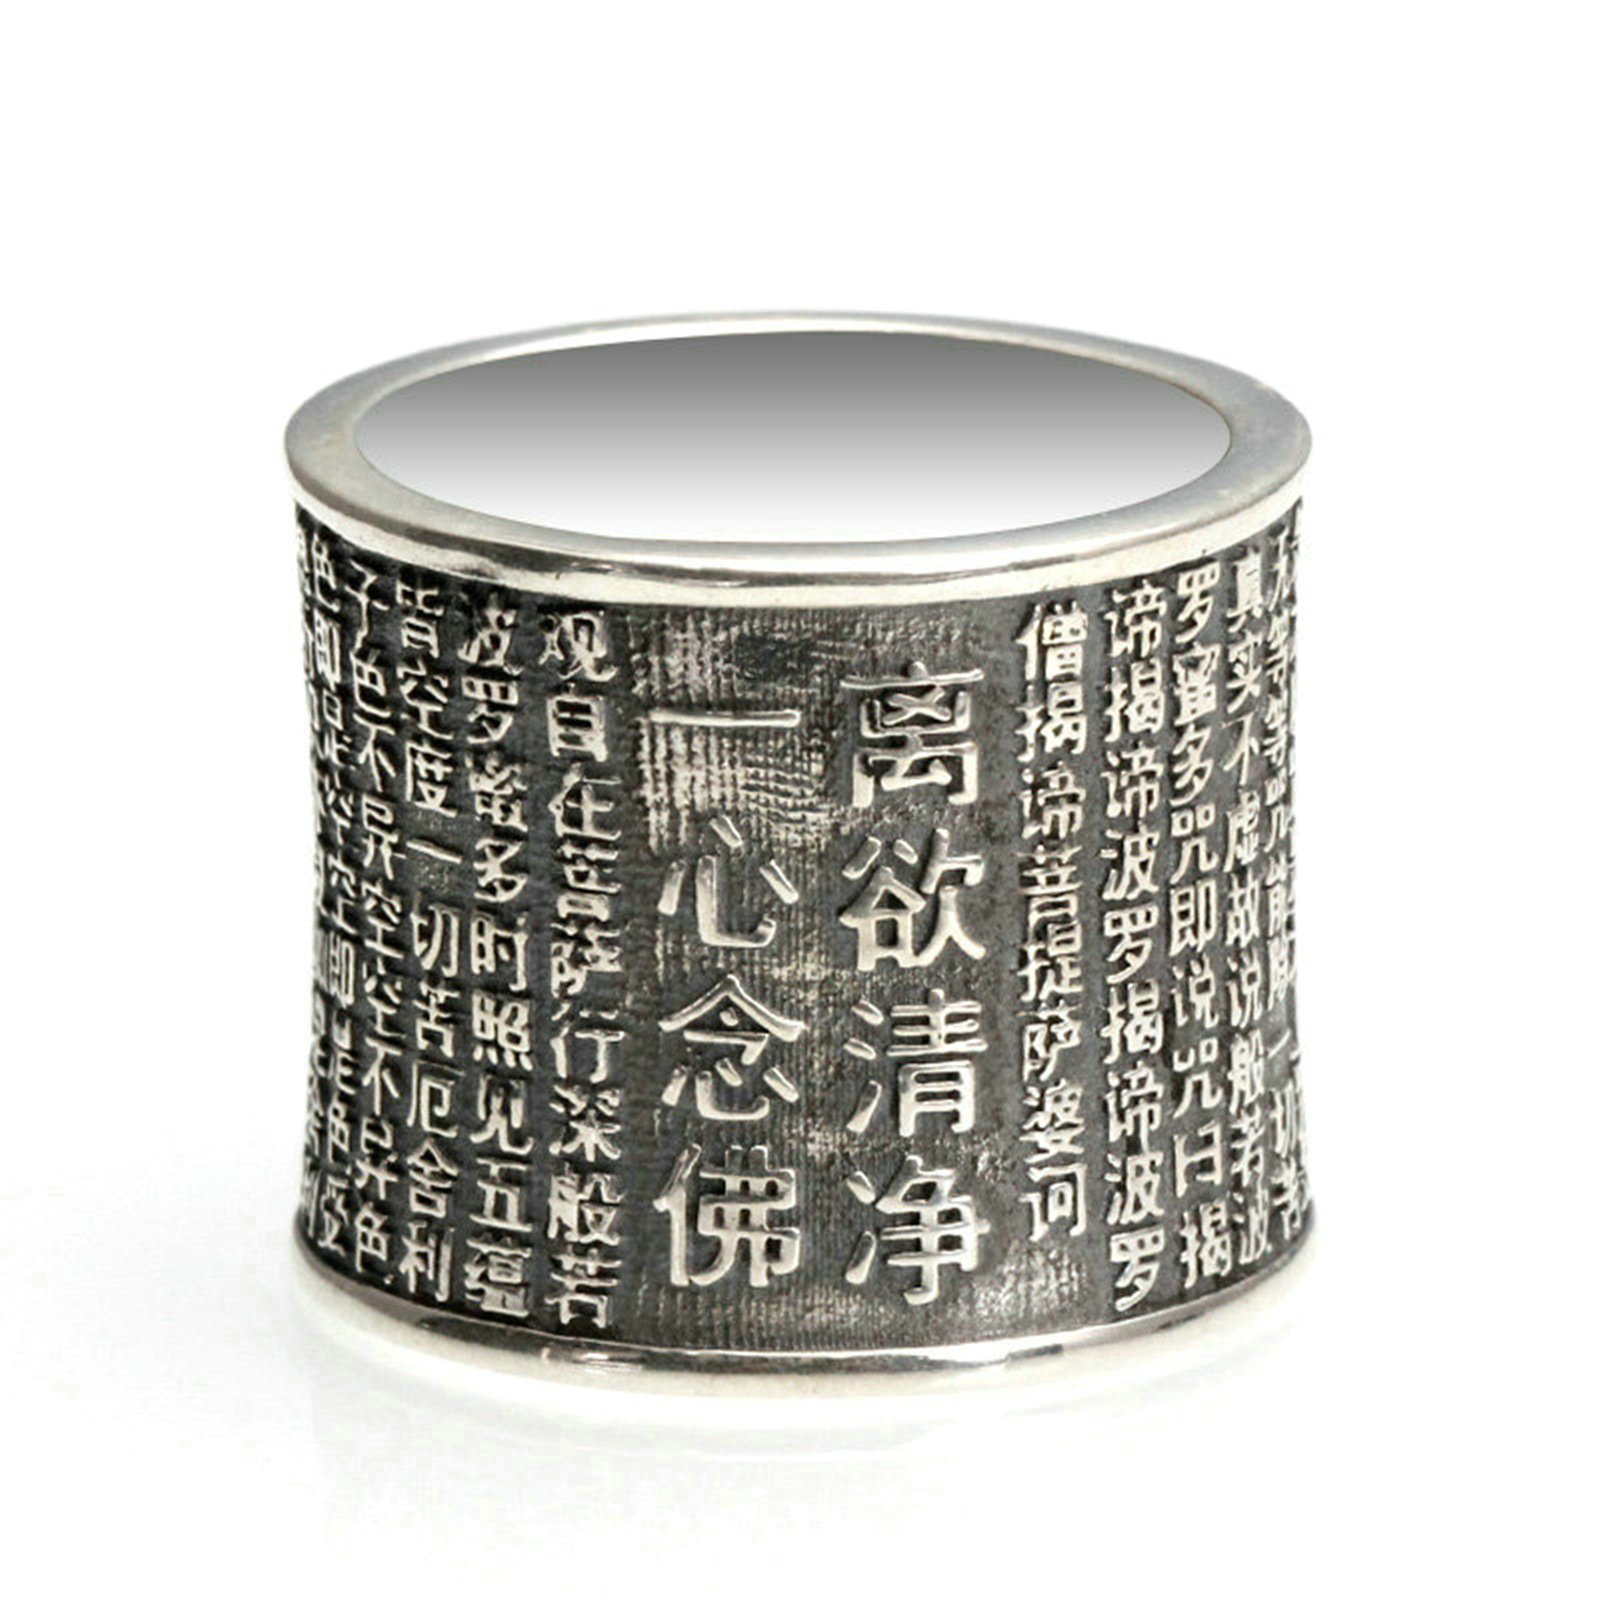 Adisaer Biker Rings Silver Ring for Men 2Cm Chinese Heart Sutra Buddhist Ring Size 12.5 Vintage Punk